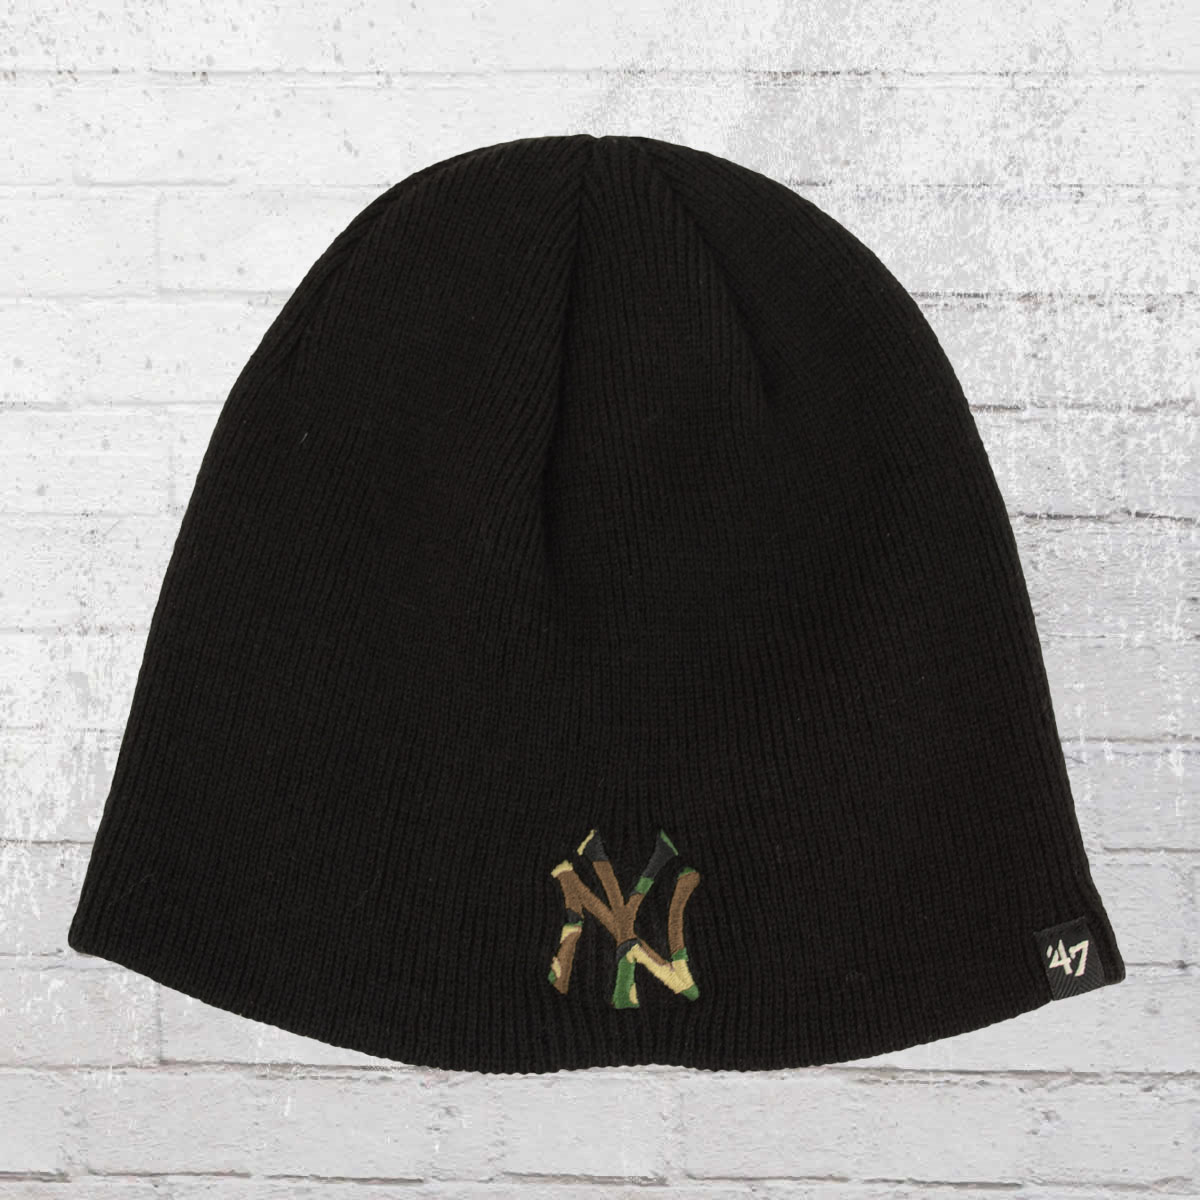 409e19bf086 Have you seen  Pelle Pelle Winter Hat Core Beanie black